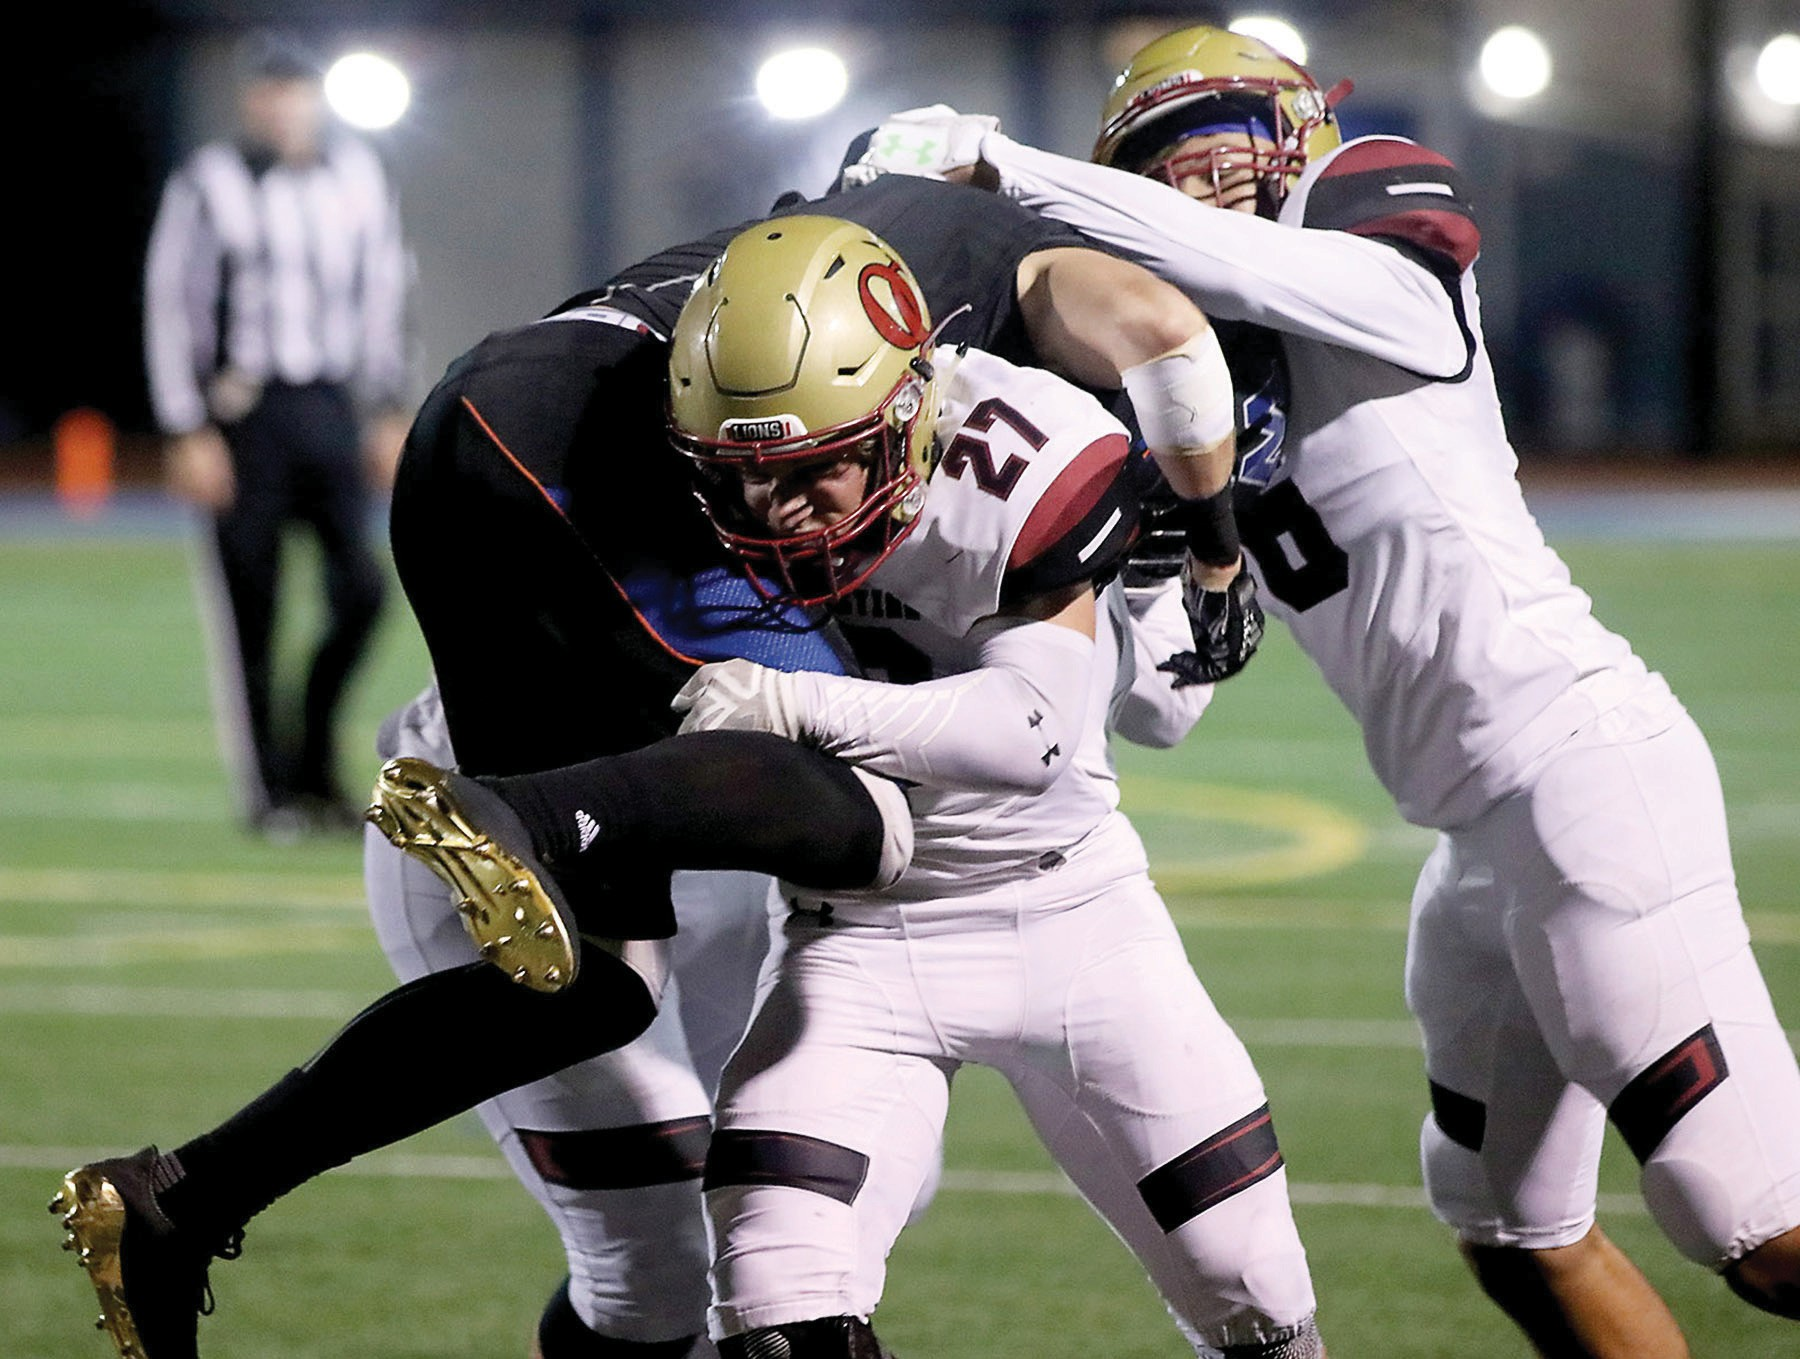 HITCHIN' A RIDE—Oaks Christian High football safety Nate Lenthall, No. 27, tackles Westlake's Nathan Brooks during the Lions' 42-7 road win Nov. 3. Photos by ROB VARELA/Acorn Newspapers